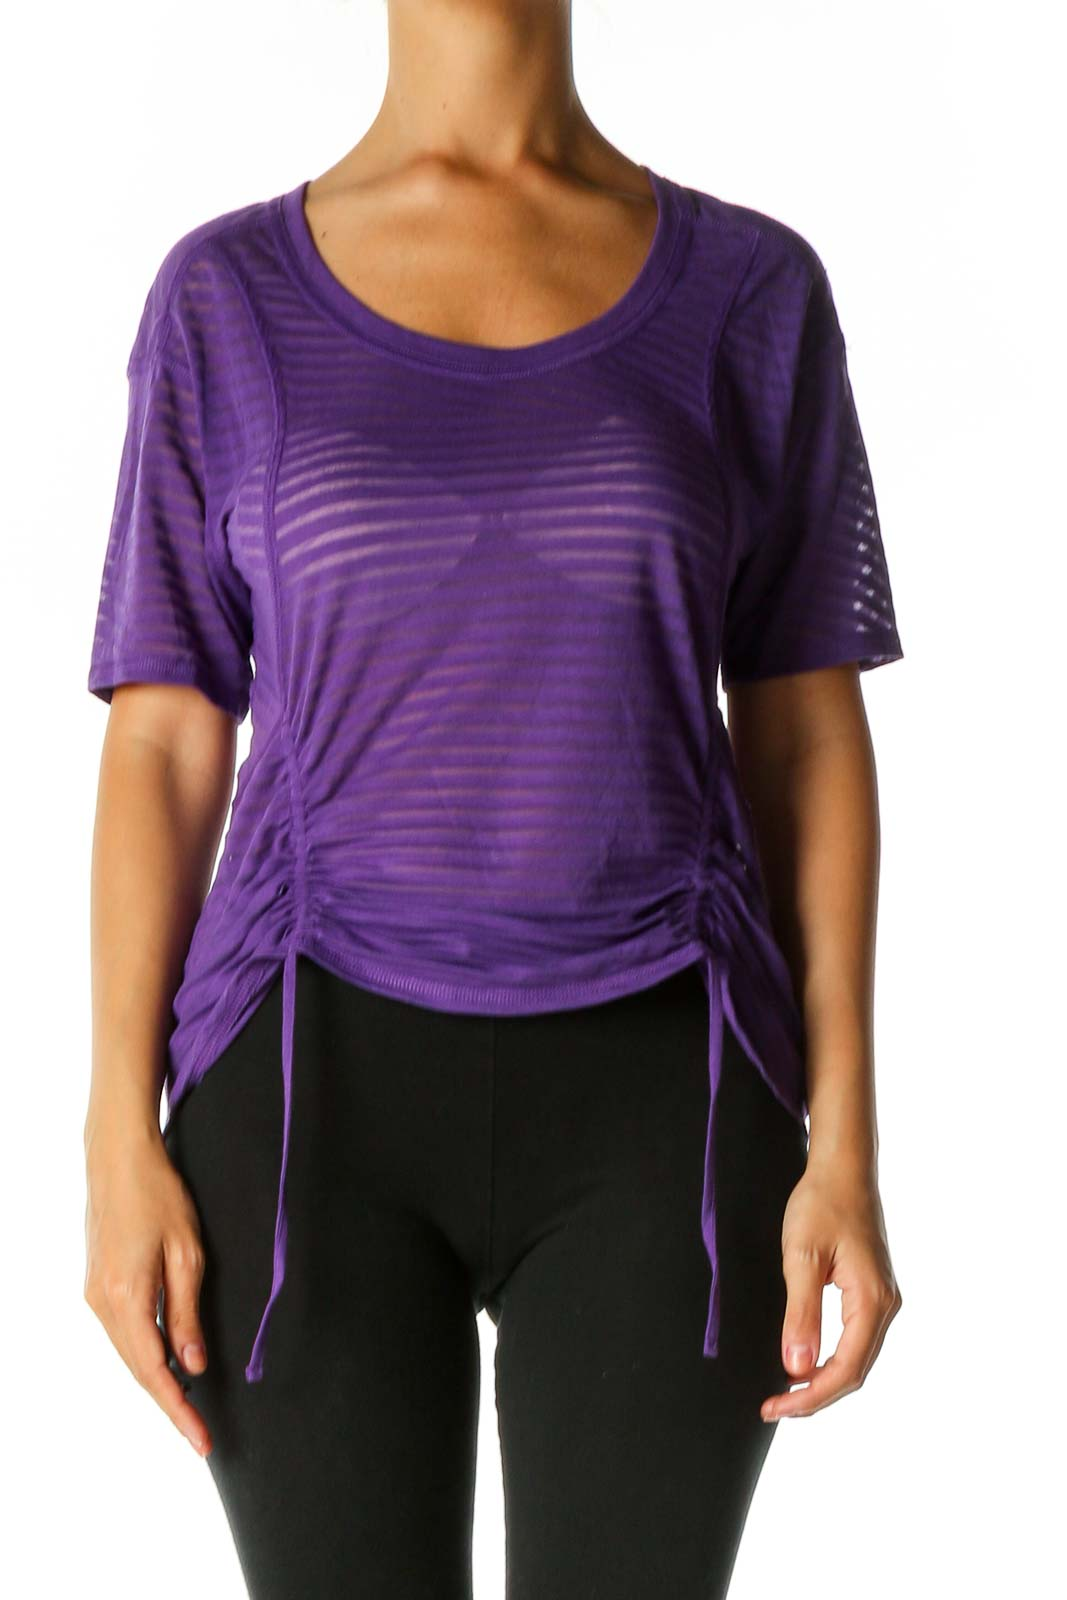 Purple Striped Activewear T-Shirt Front